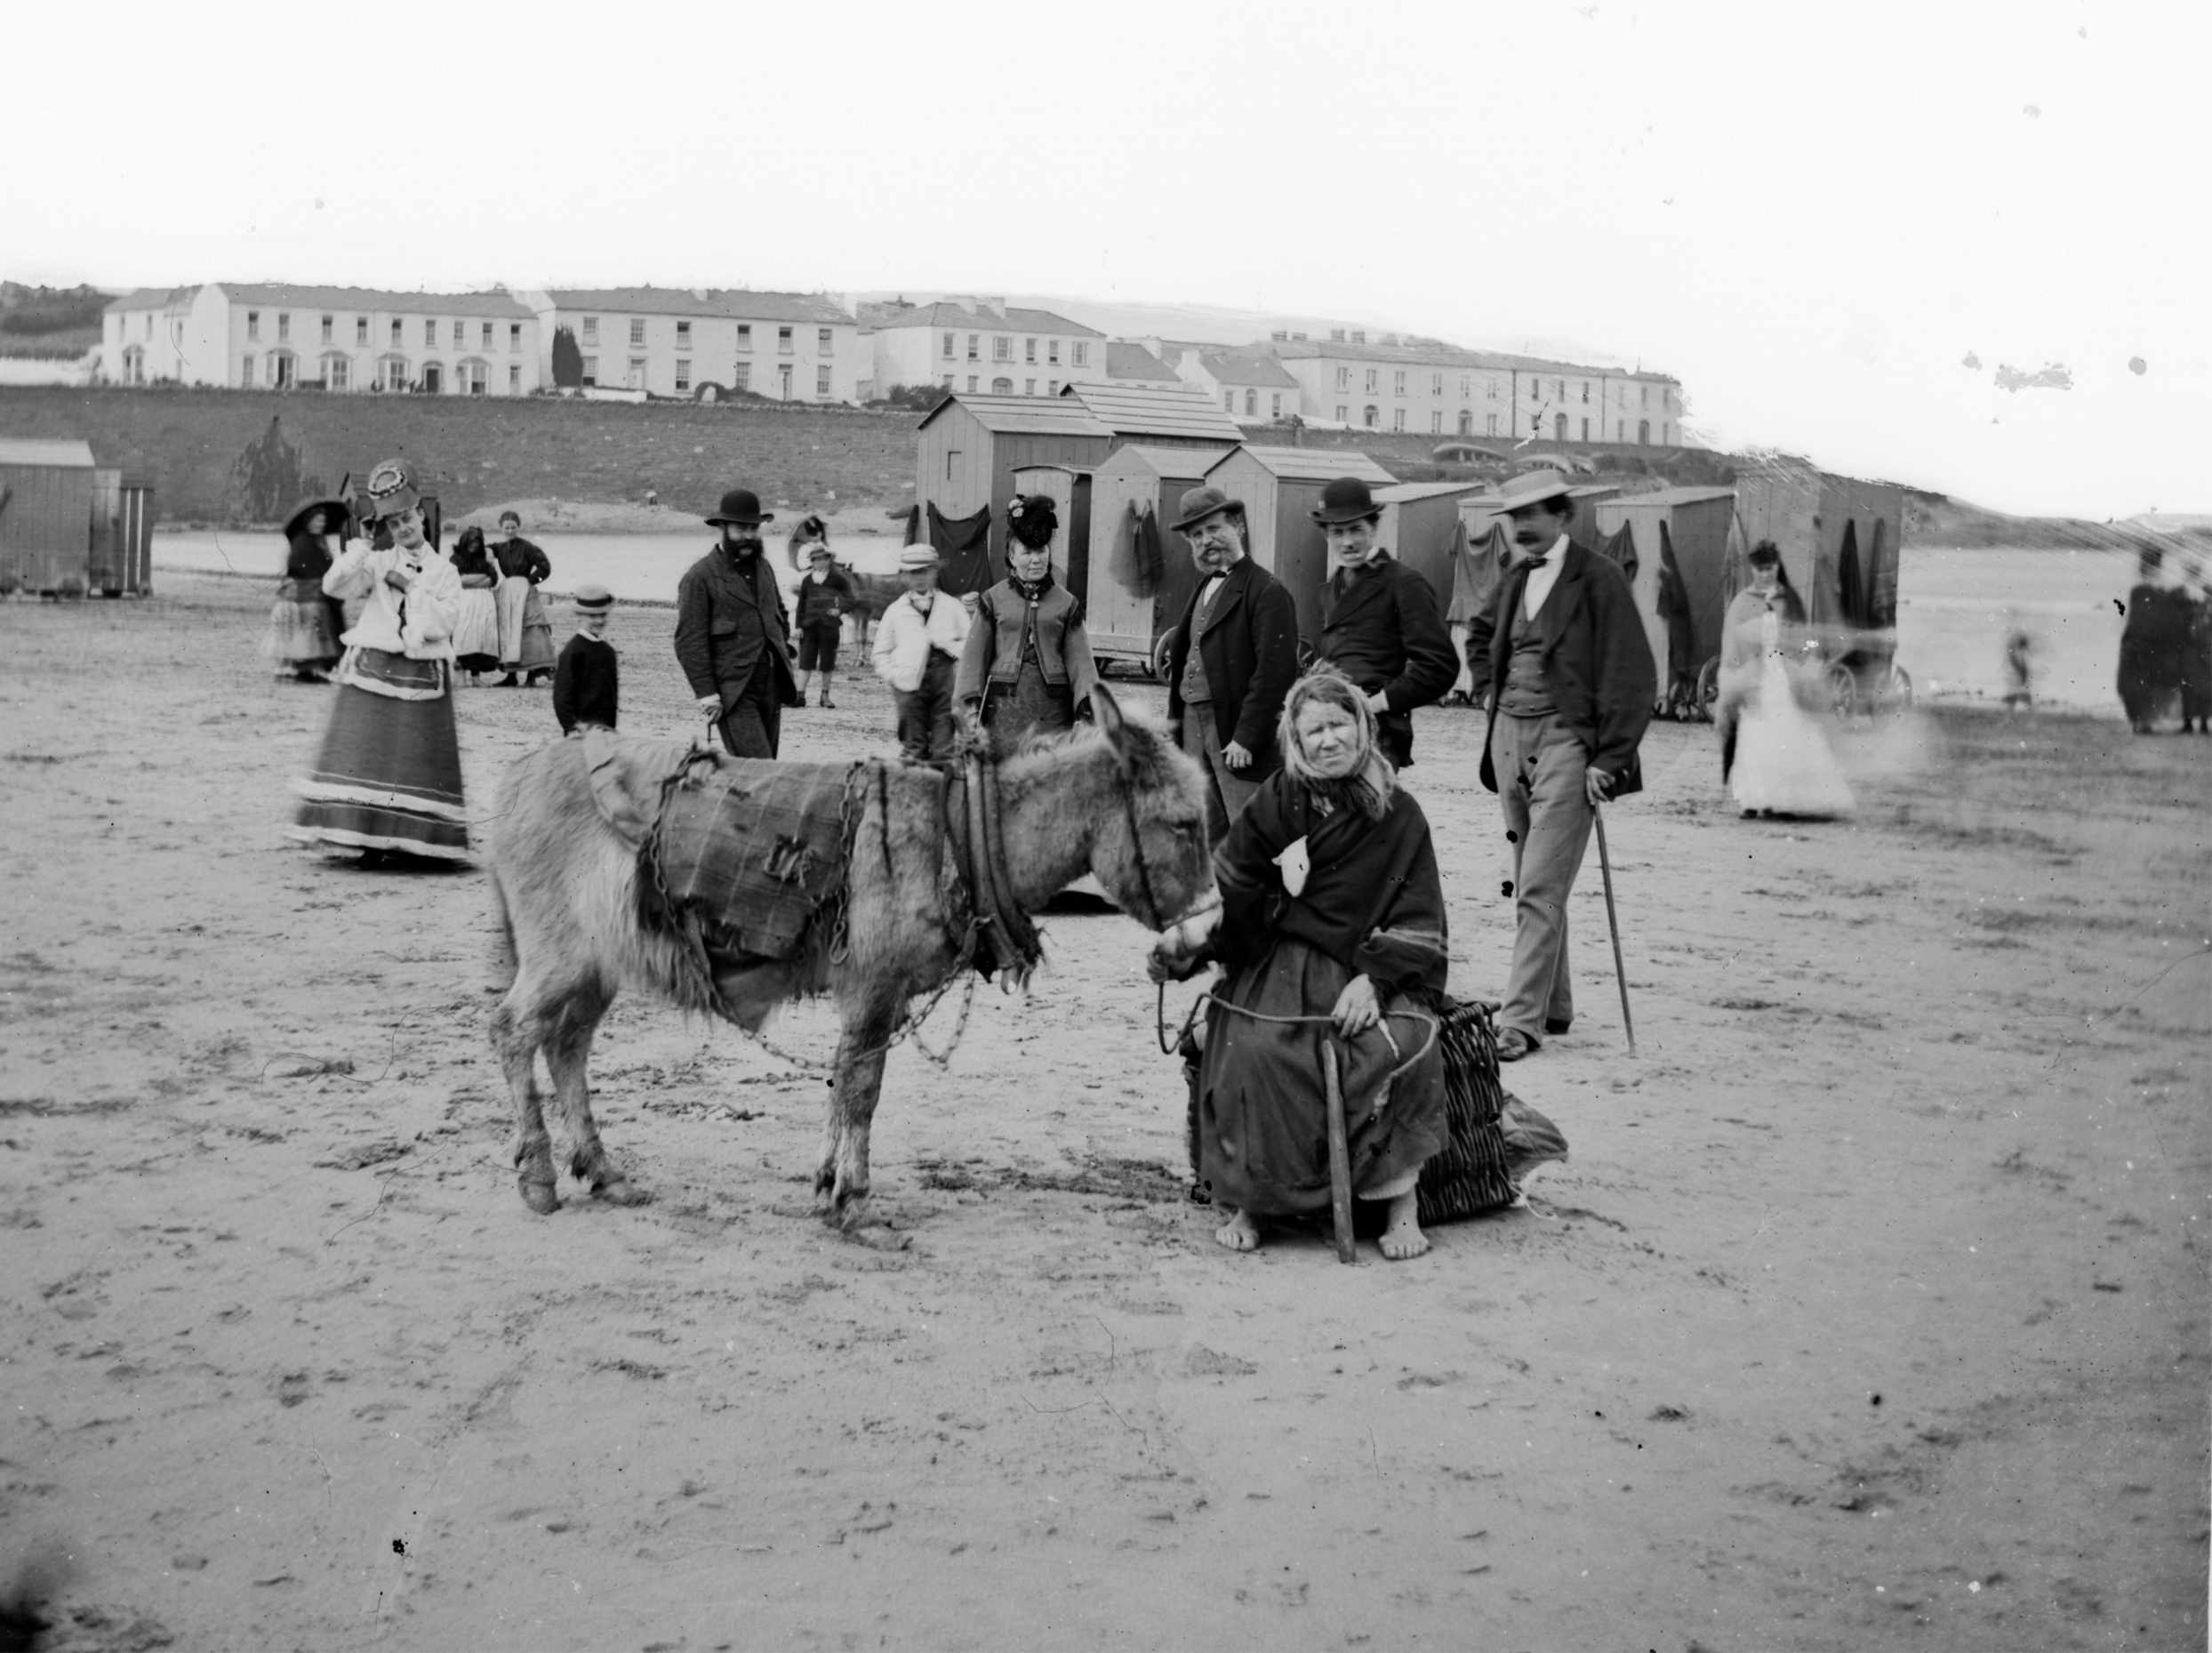 The Victorian origins of seaside traditions © iStock